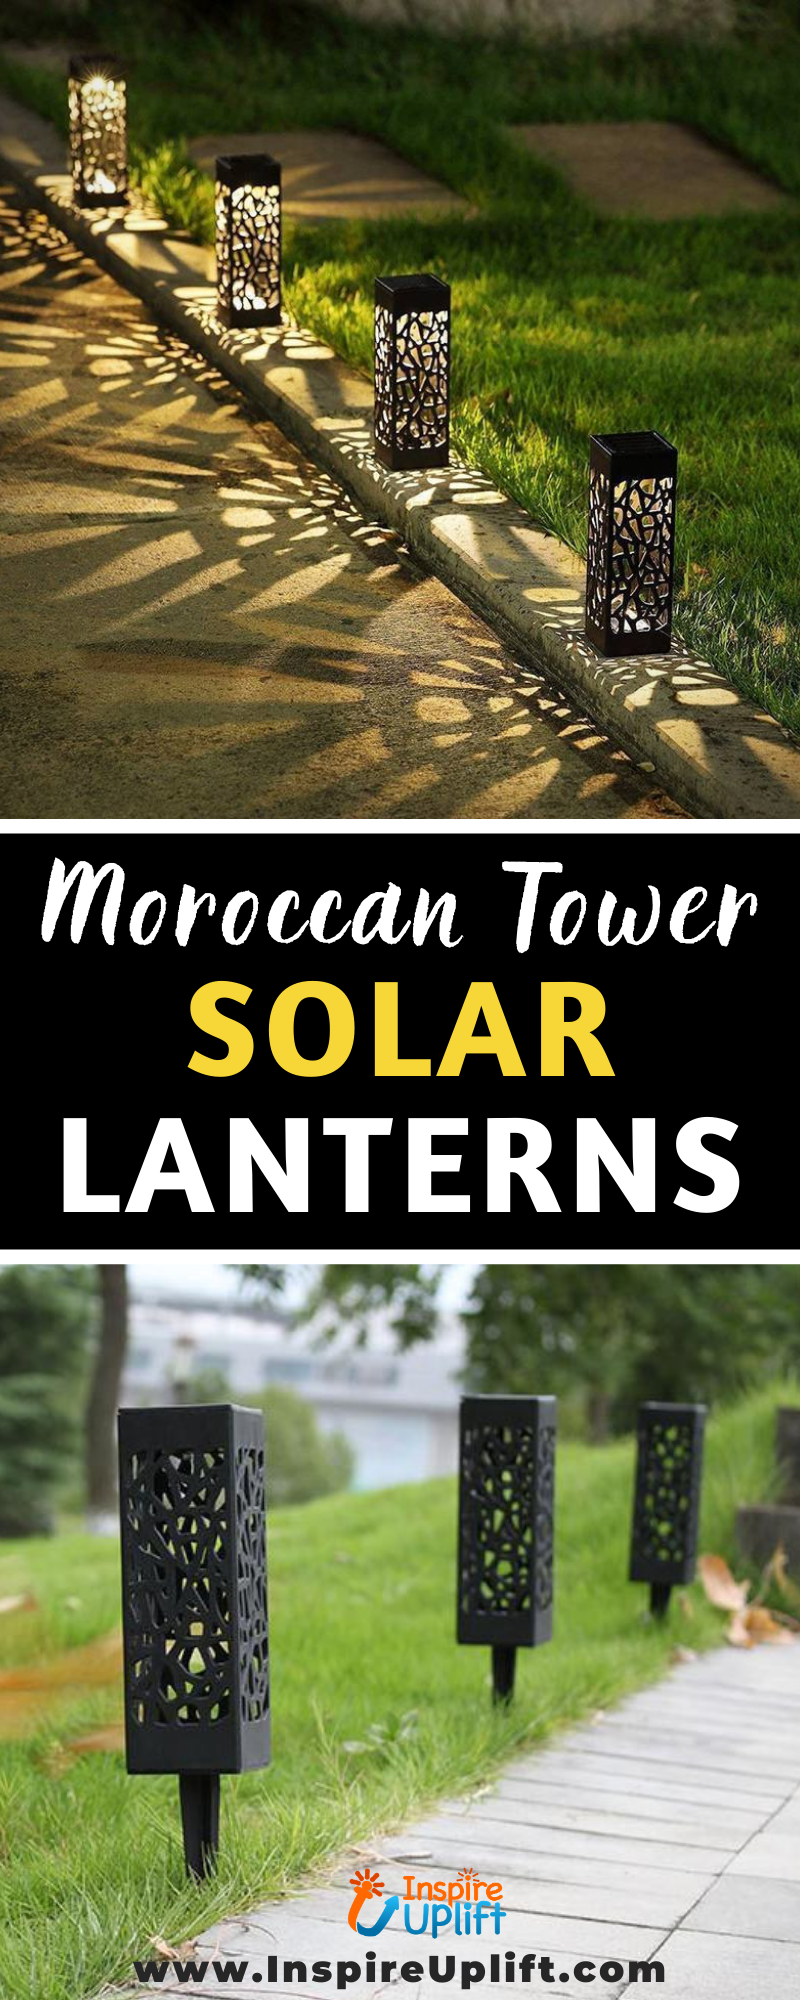 Moroccan Tower Solar Lanterns 😍 InspireUplift.com